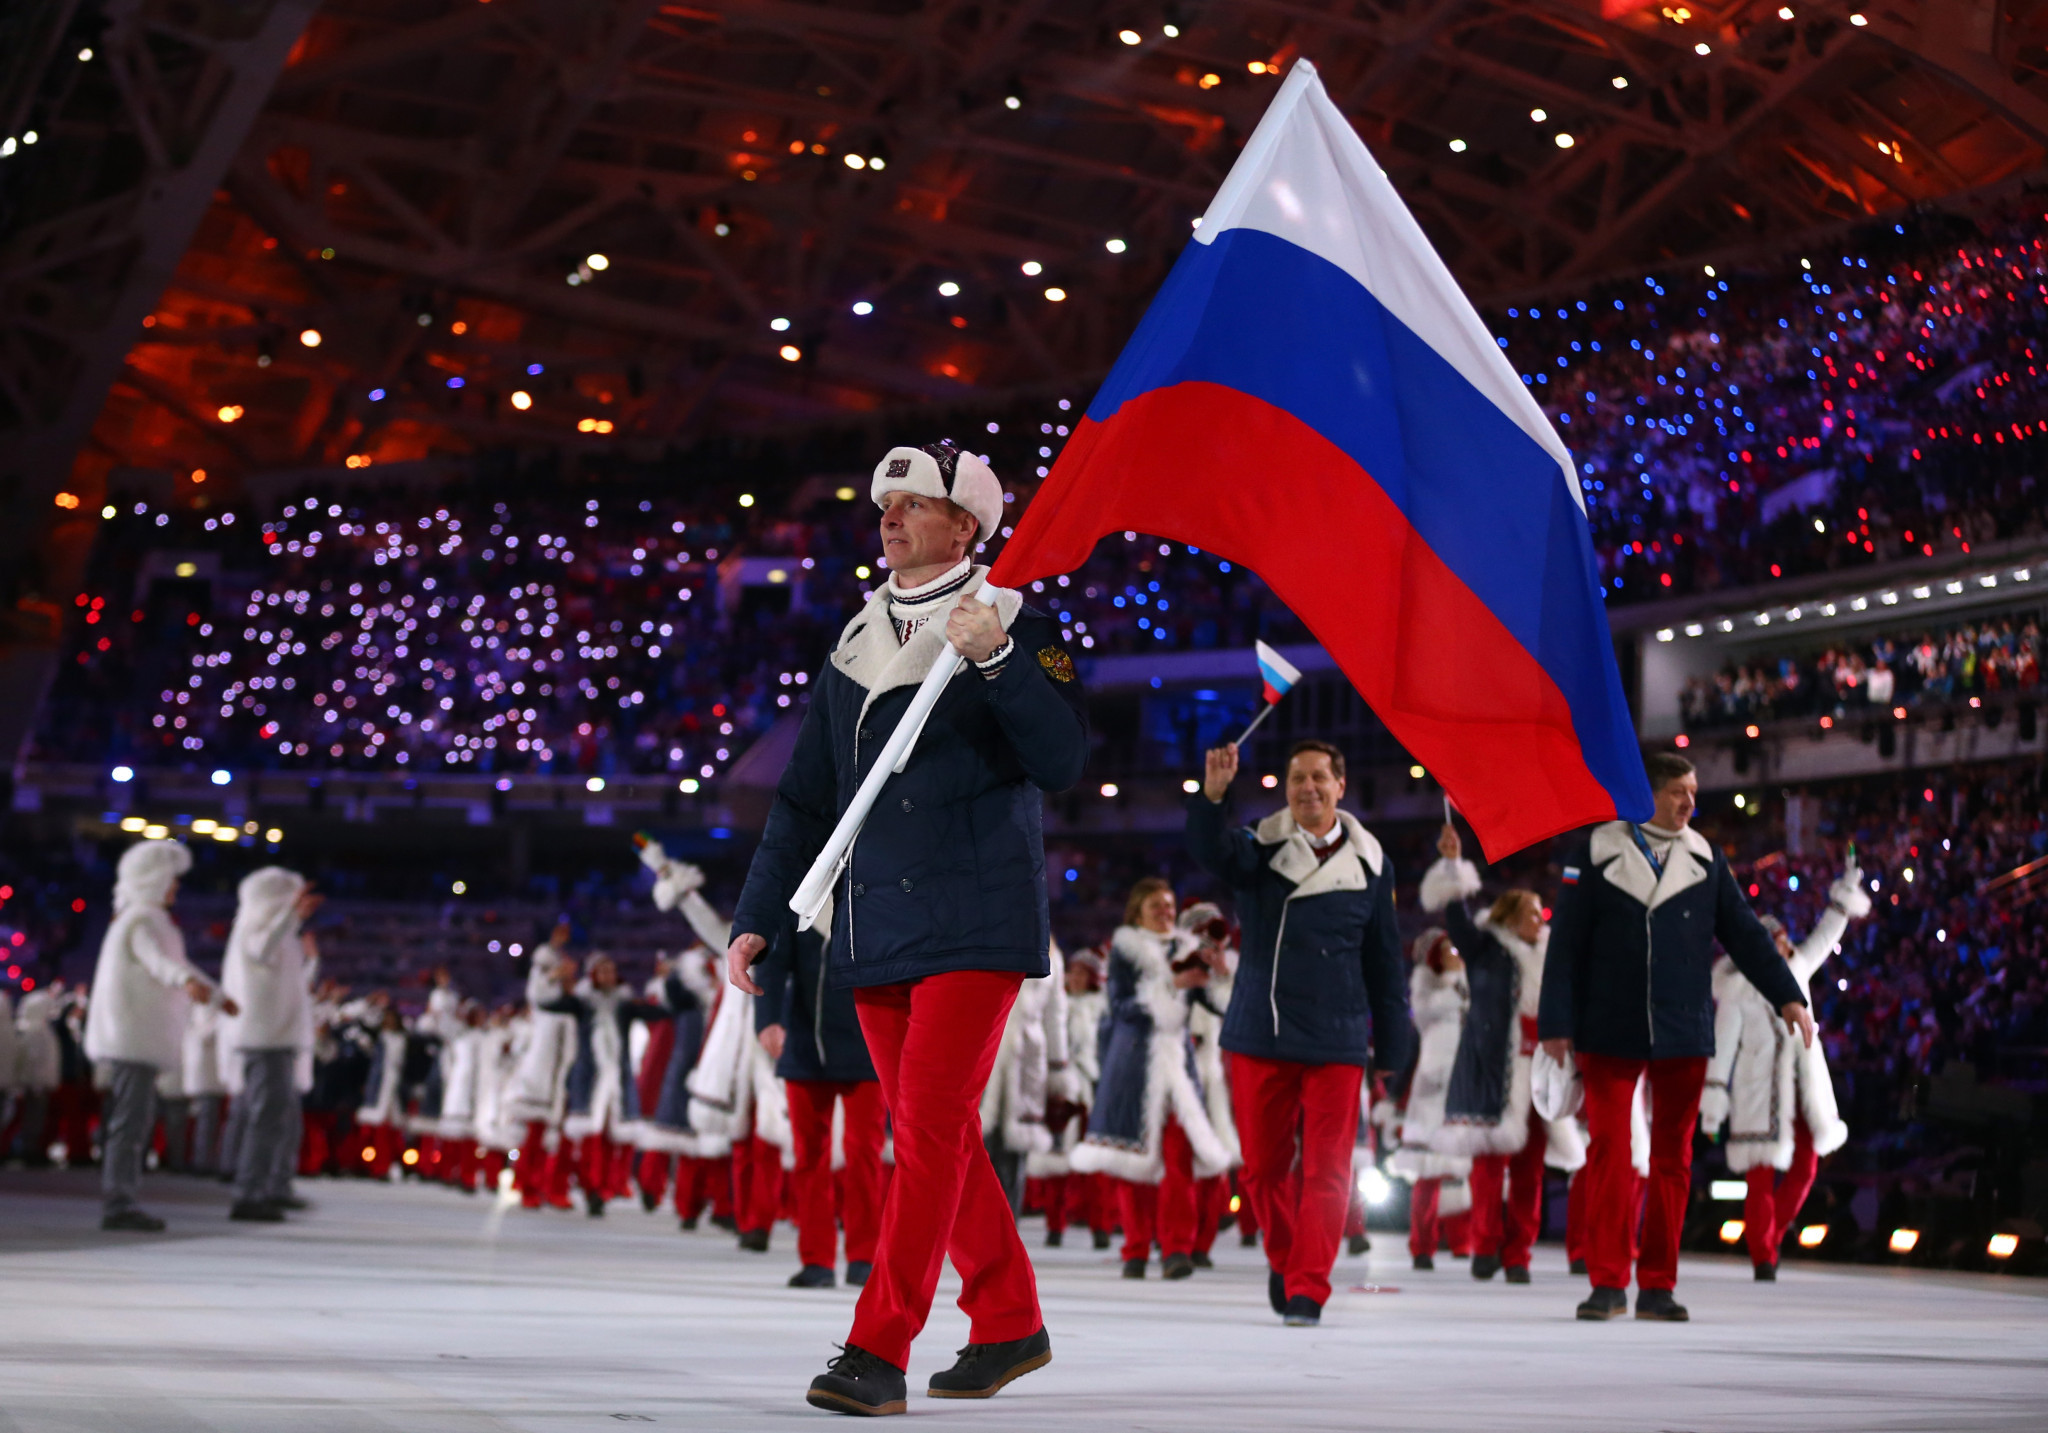 International Olympic Committee reduces pool of Russian athletes eligible to compete at Olympics